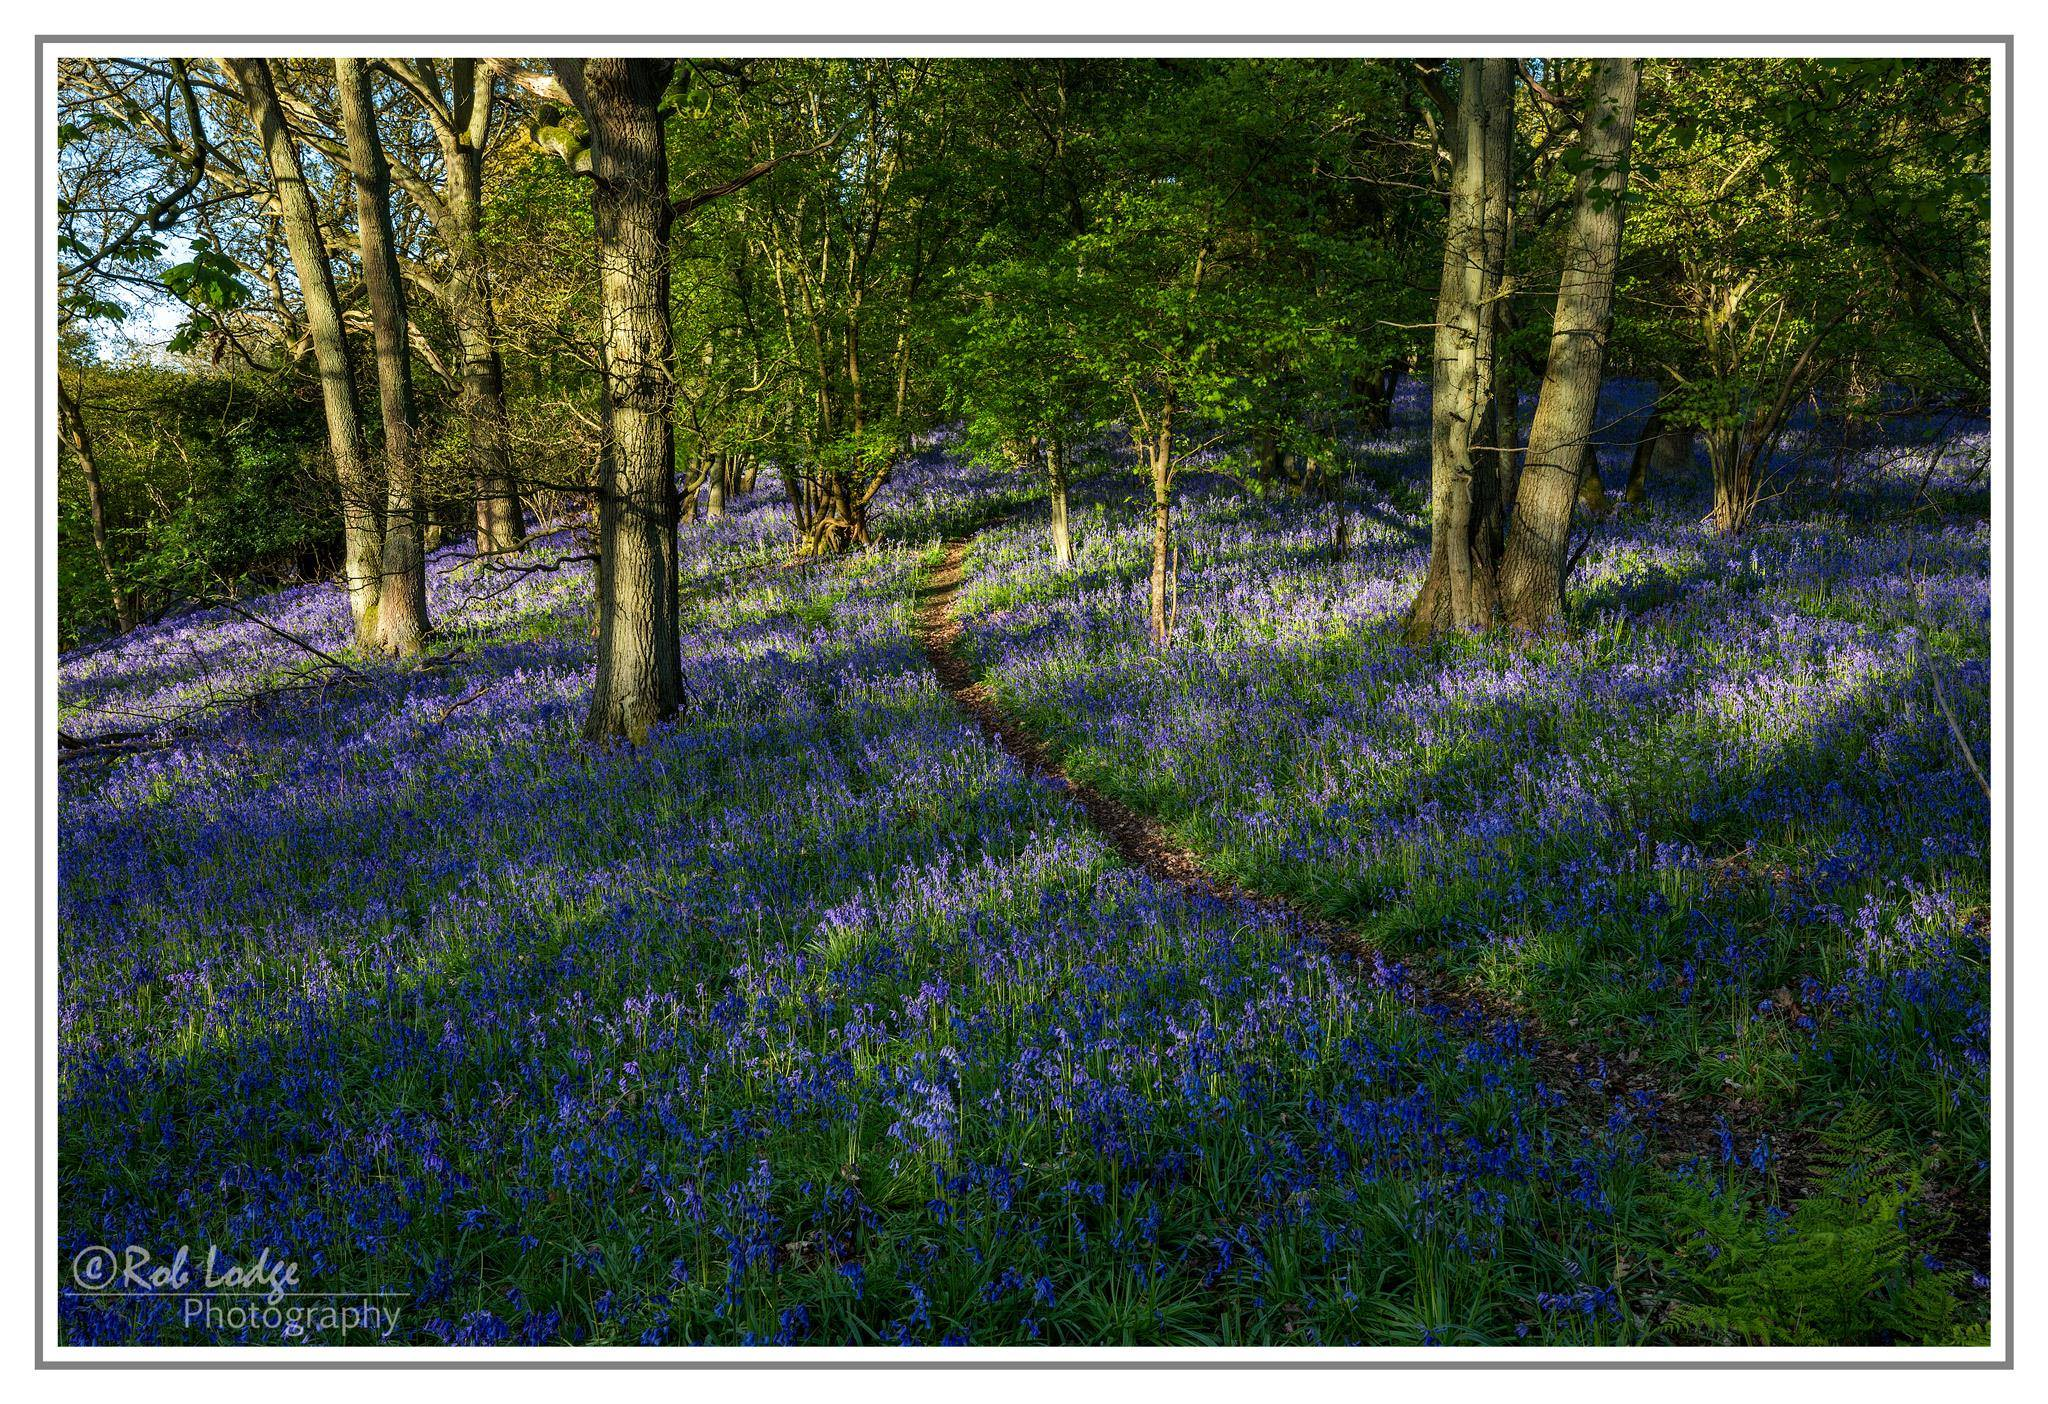 Bluebell wood Shropshire by Rob Lodge  used with permisison.jpg